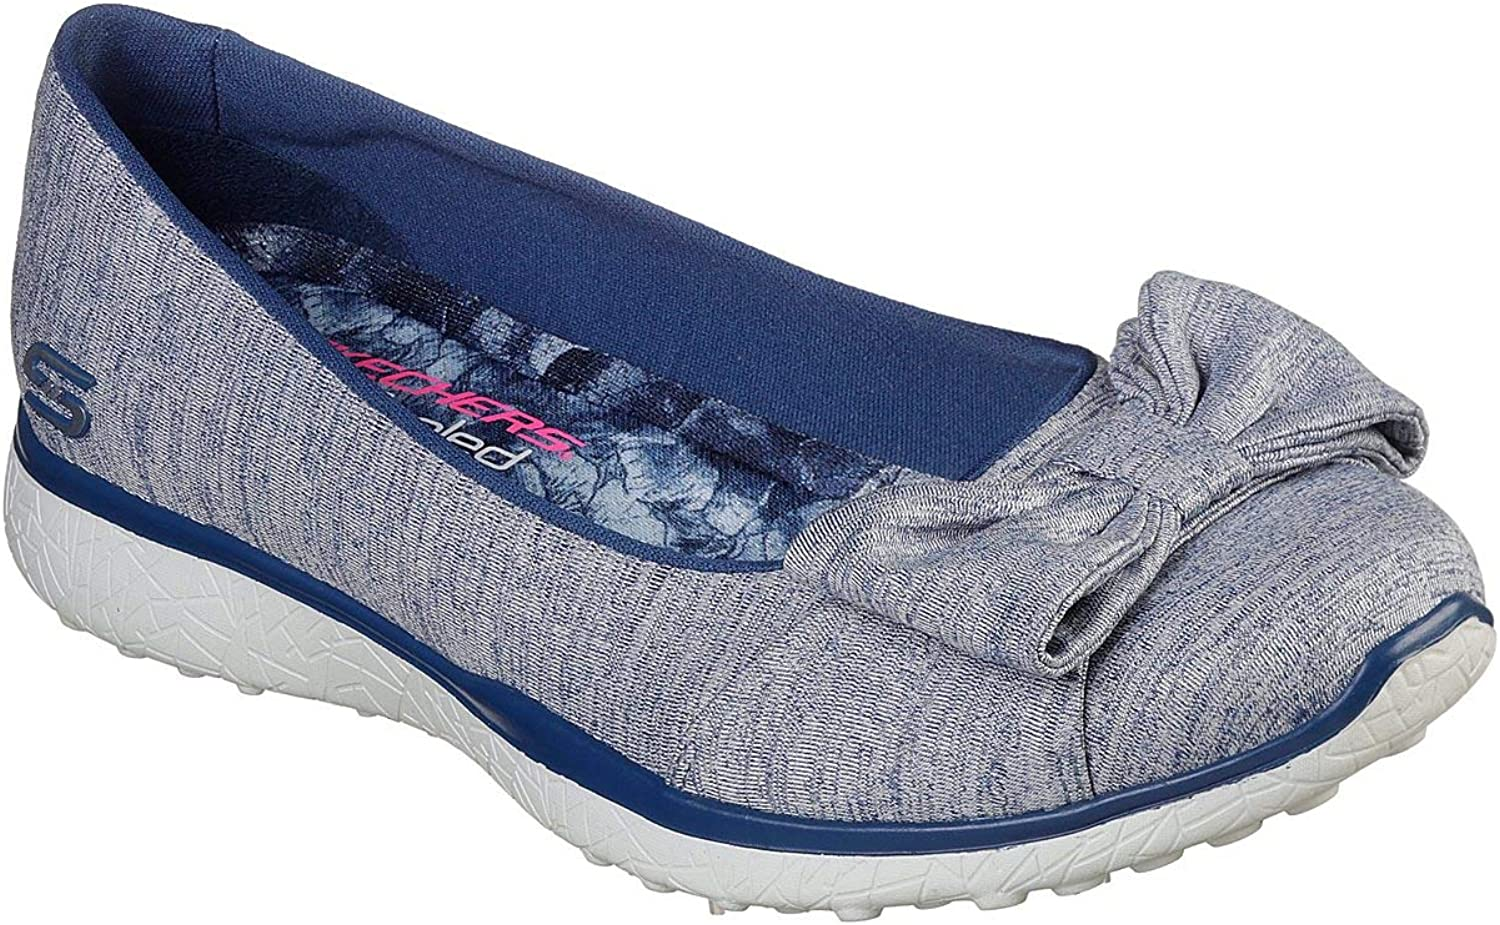 Skechers Womens Microburst - Be-You-Tiful Sneaker